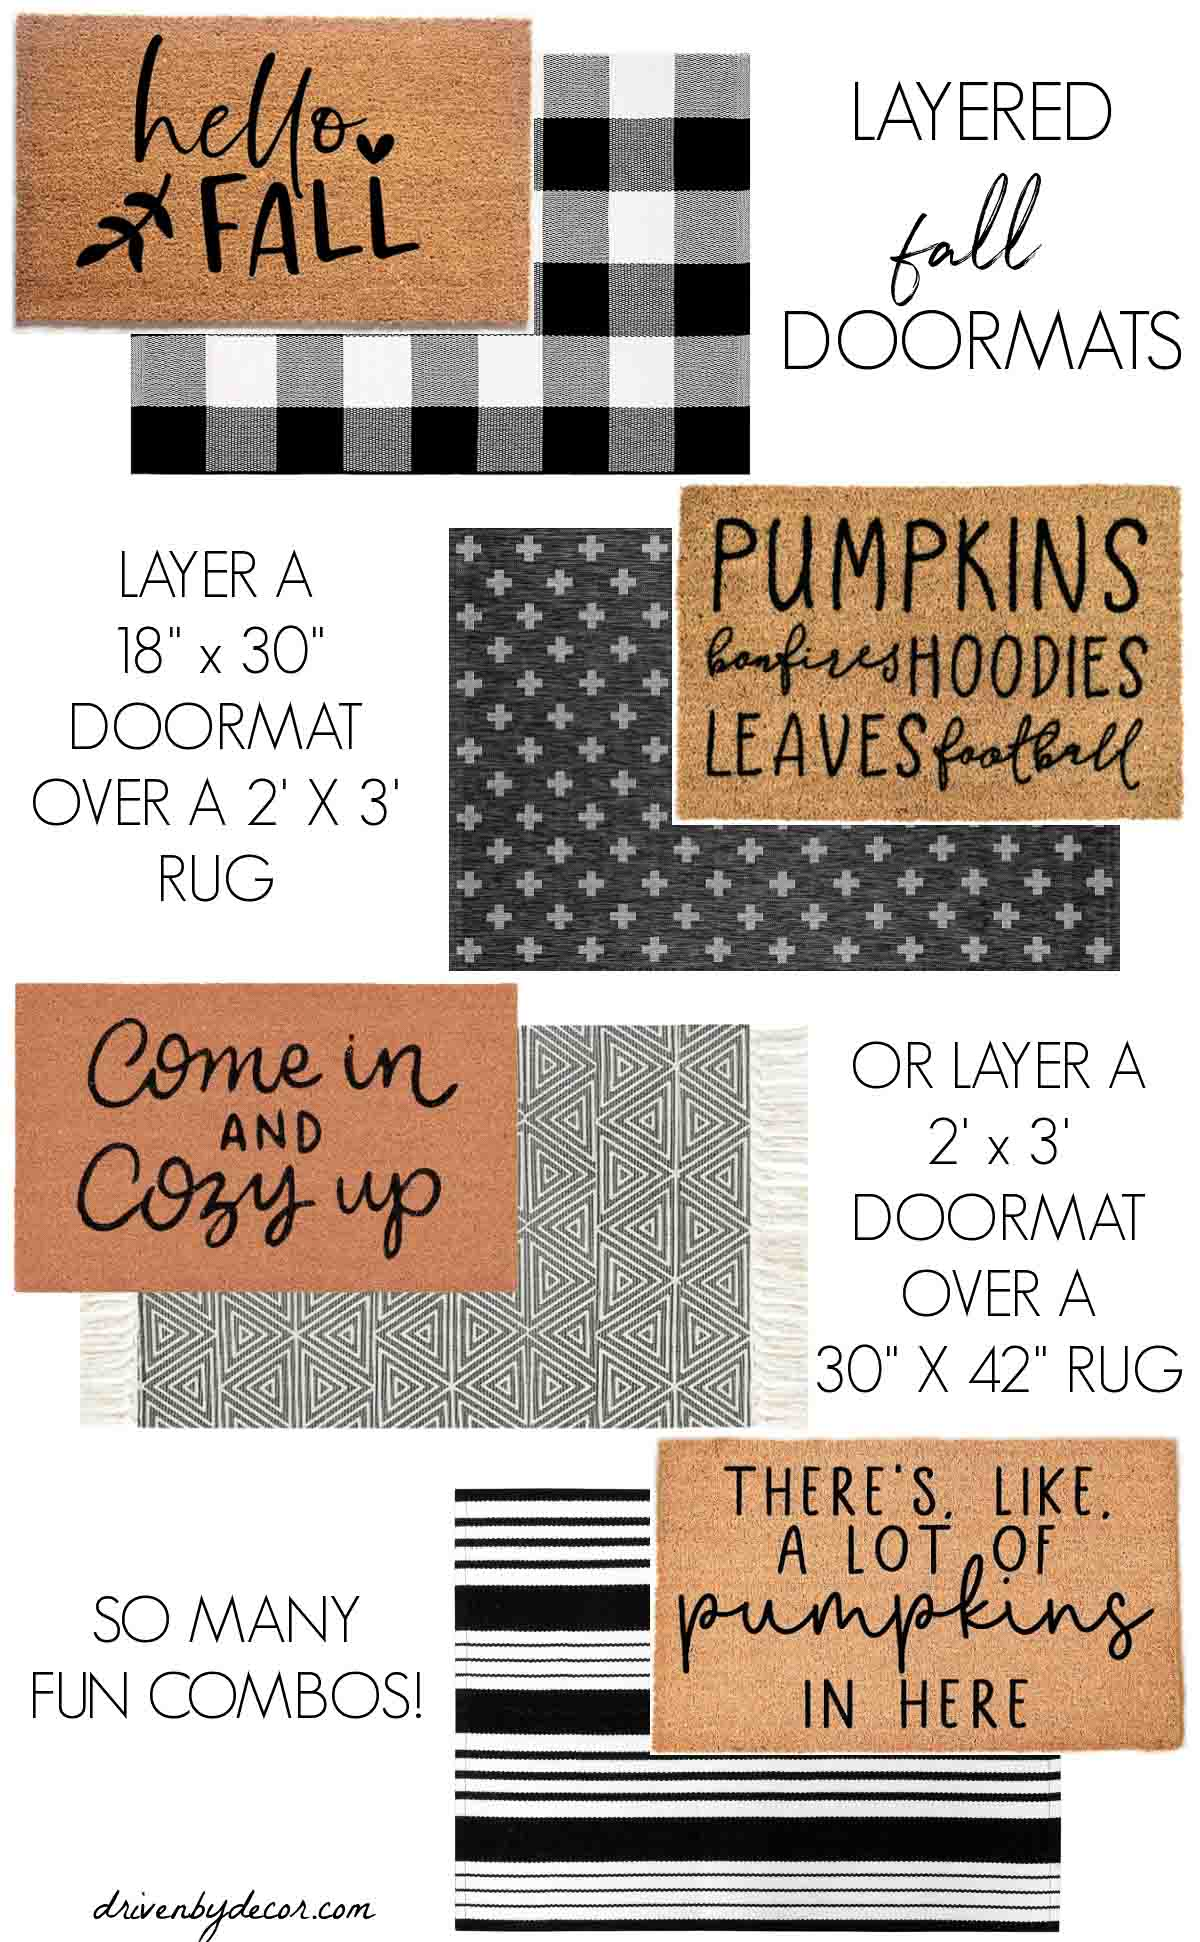 Love these layered fall doormat combos!